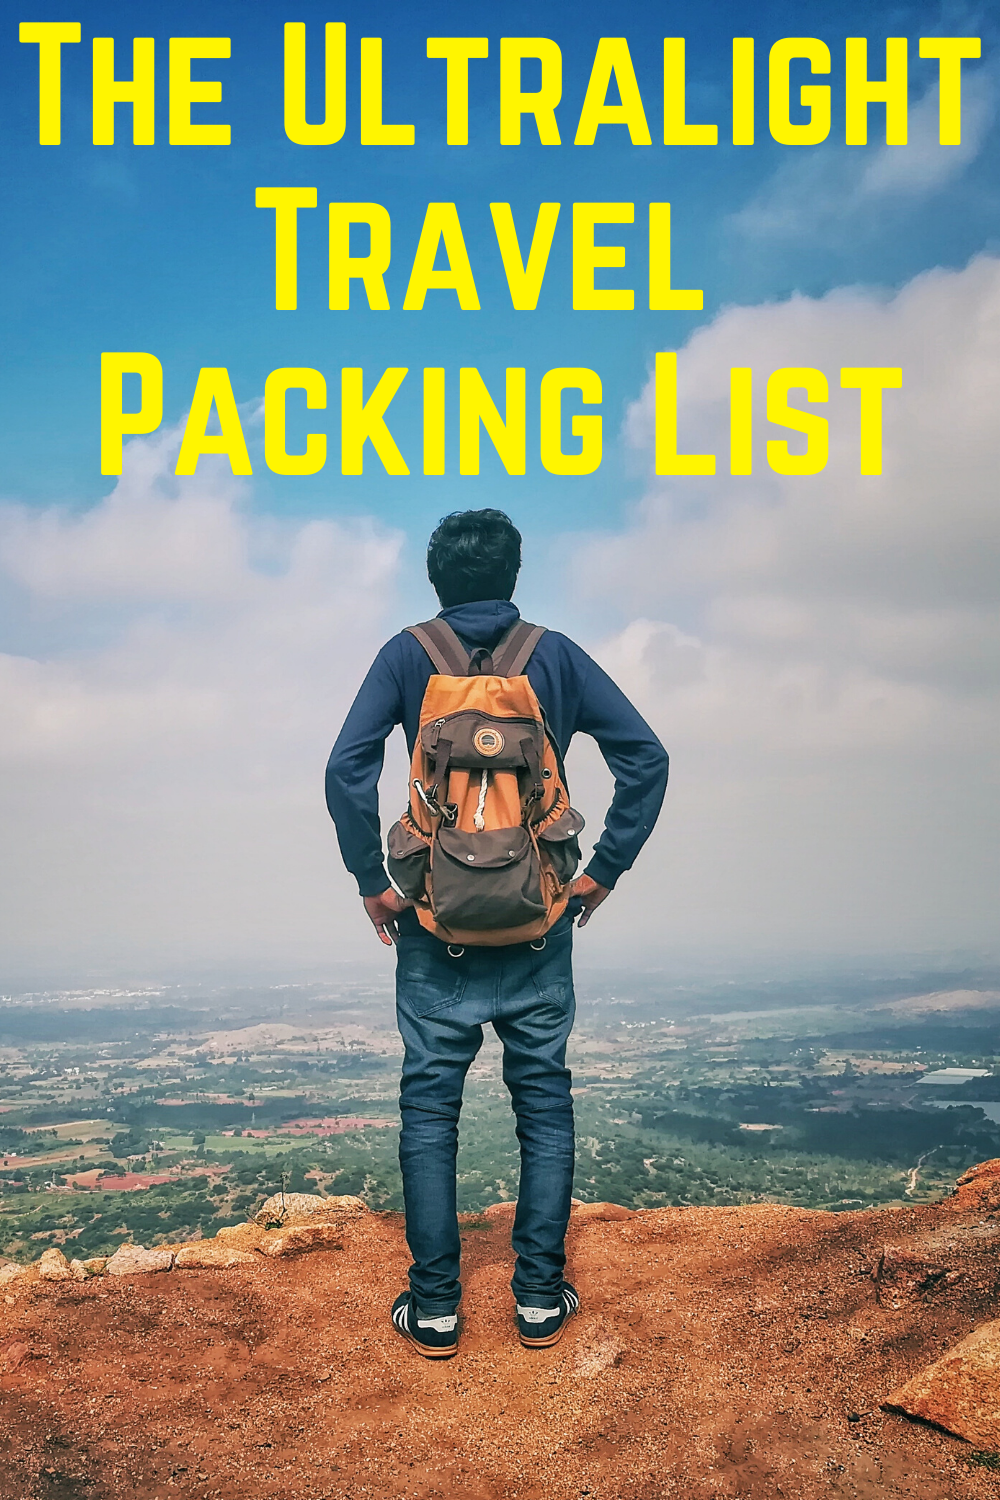 The Ultralight Travel Packing List For Men Where The Road Forks Travel Memories Travel Photography Traveling By Yourself